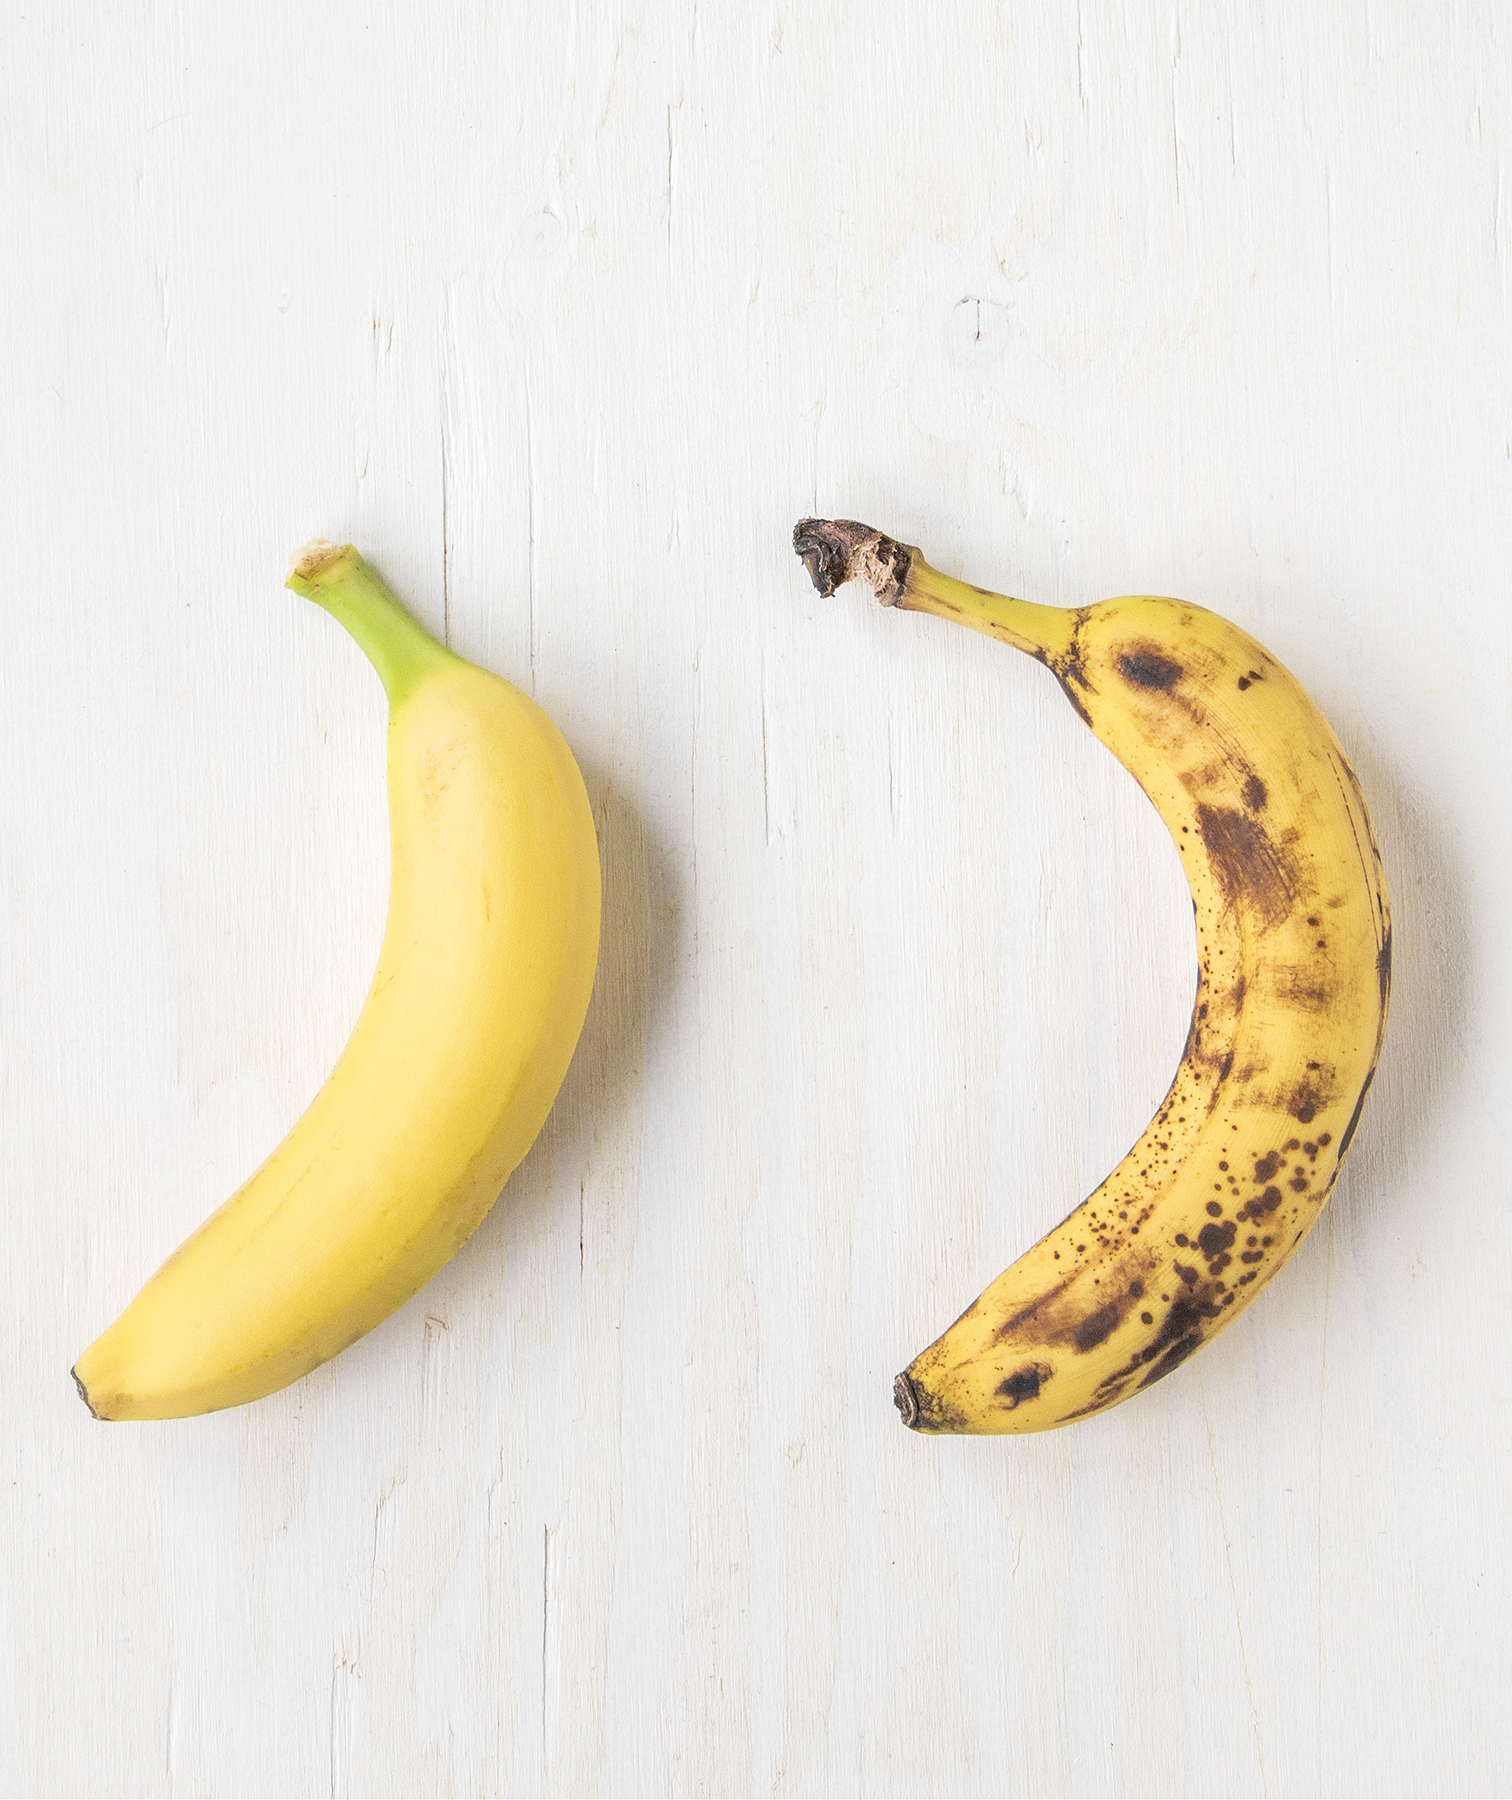 Bananas At Different Stages Of Ripeness